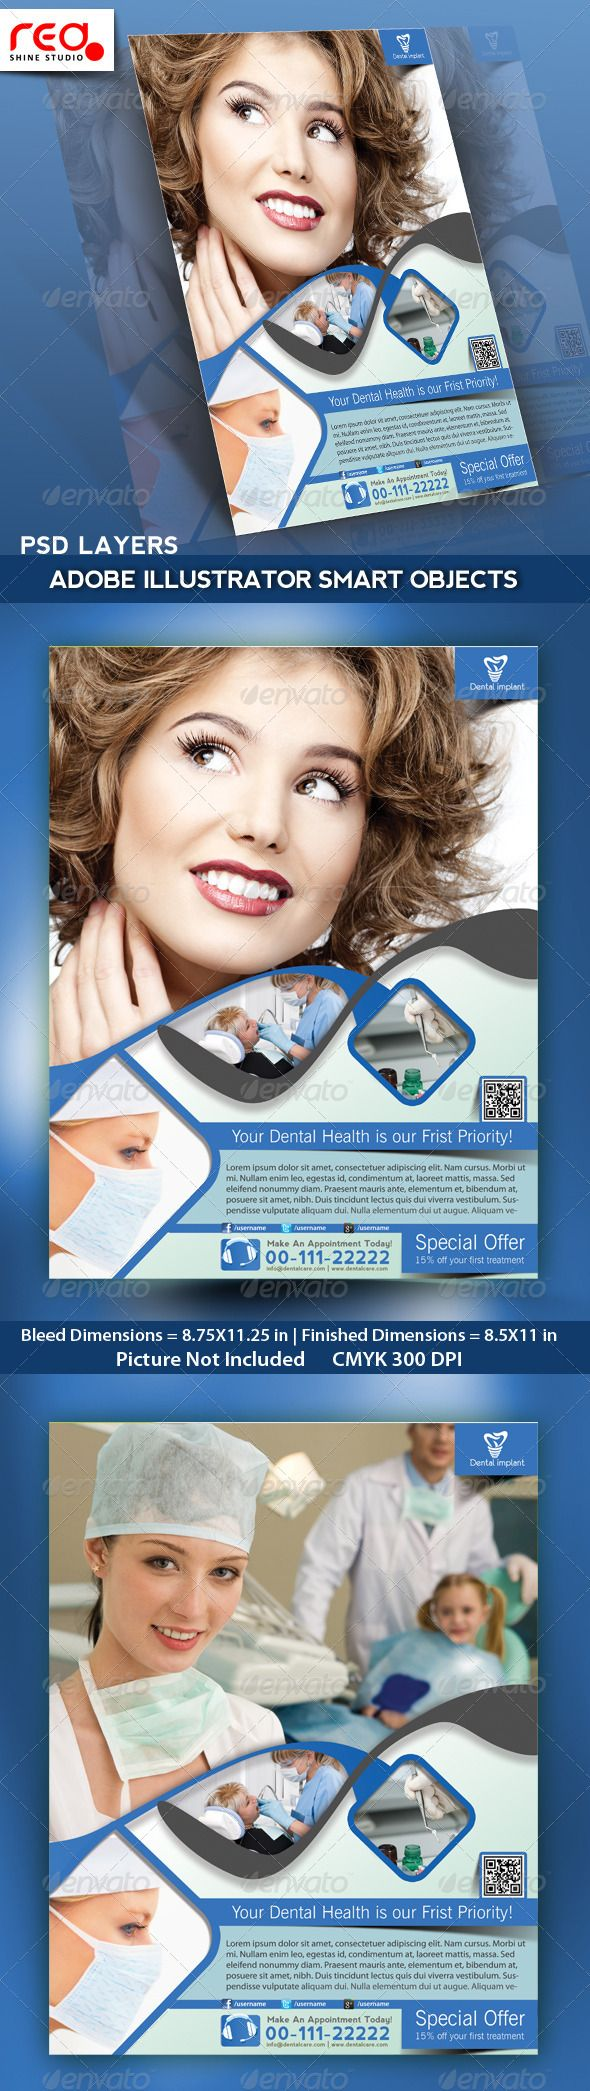 Dental Flyer, Poster & Magazine Template | Flyer template